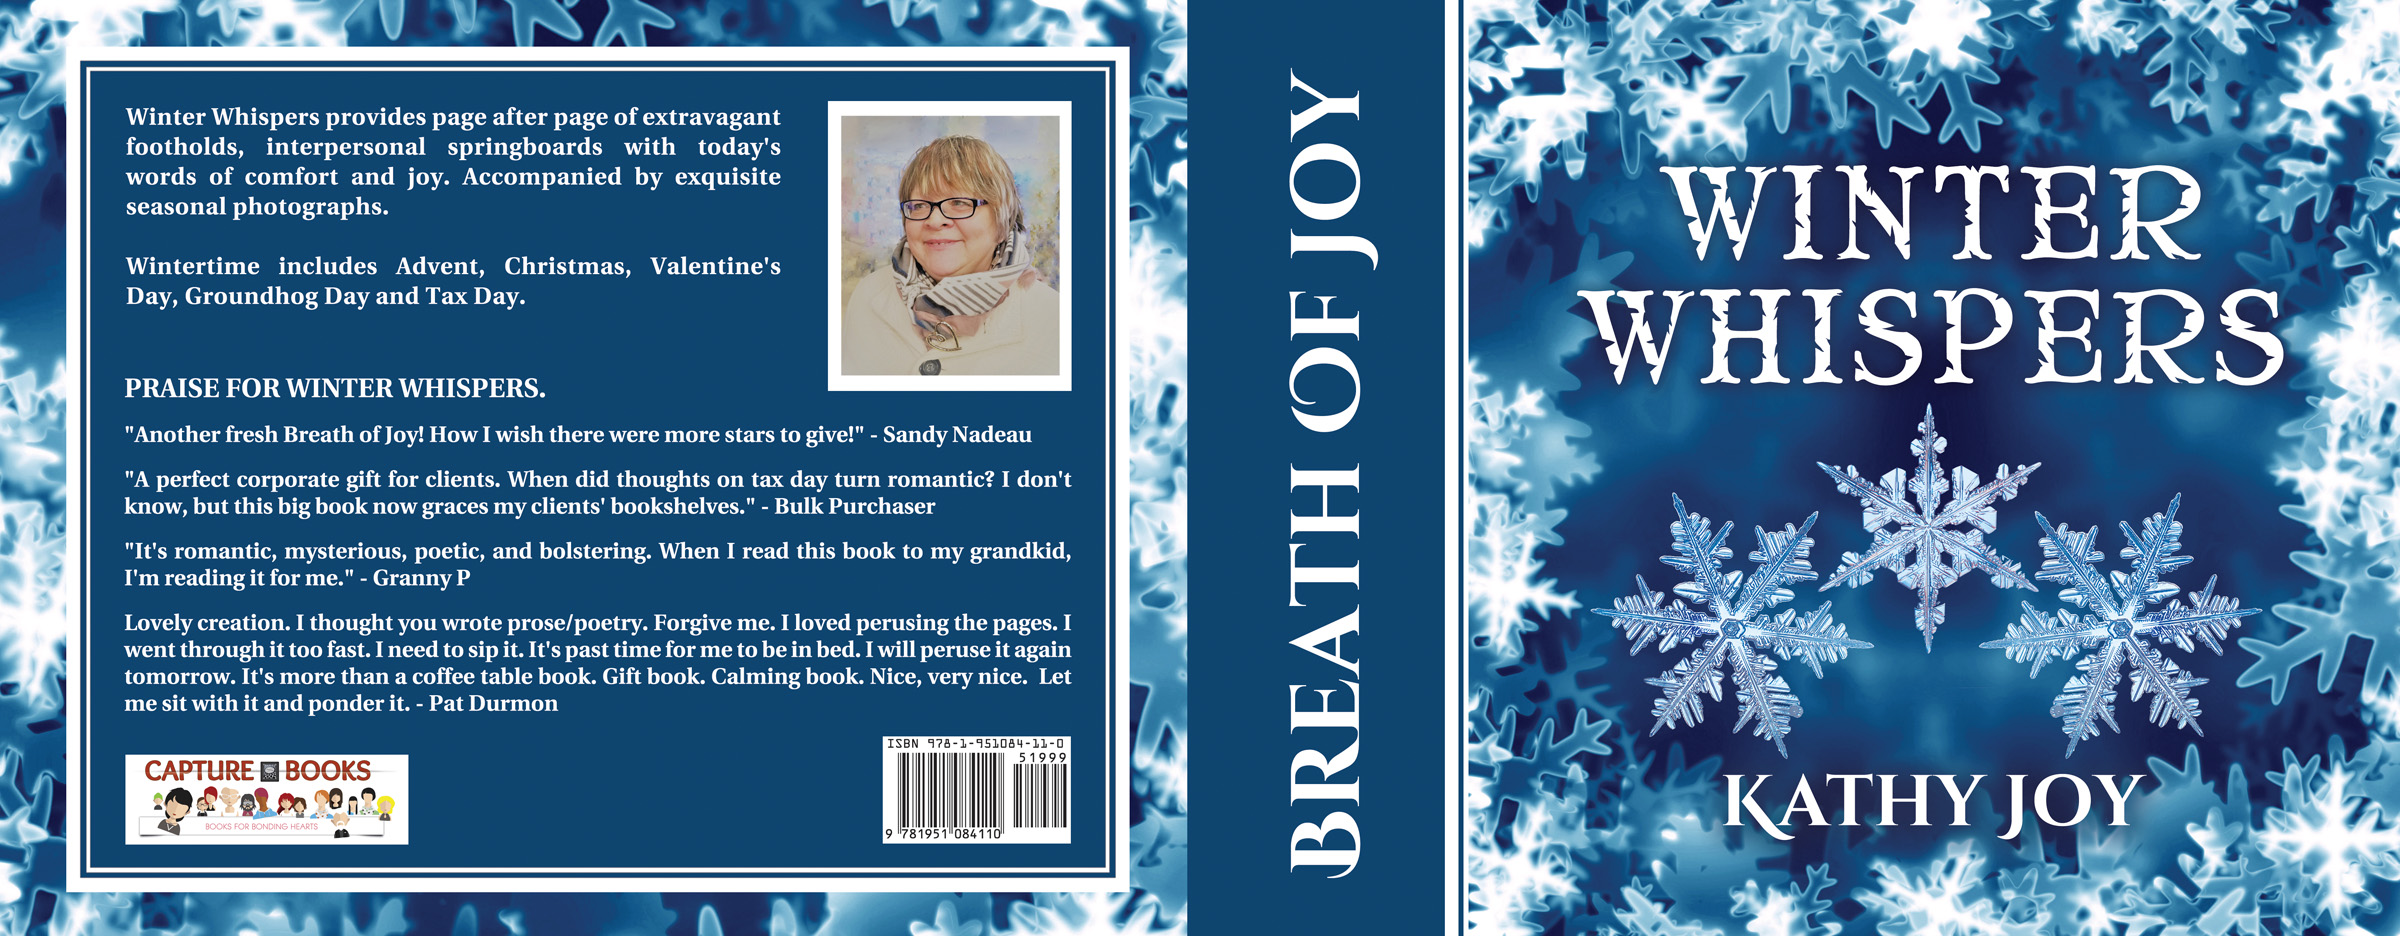 Winter Whispers by Kathy Joy